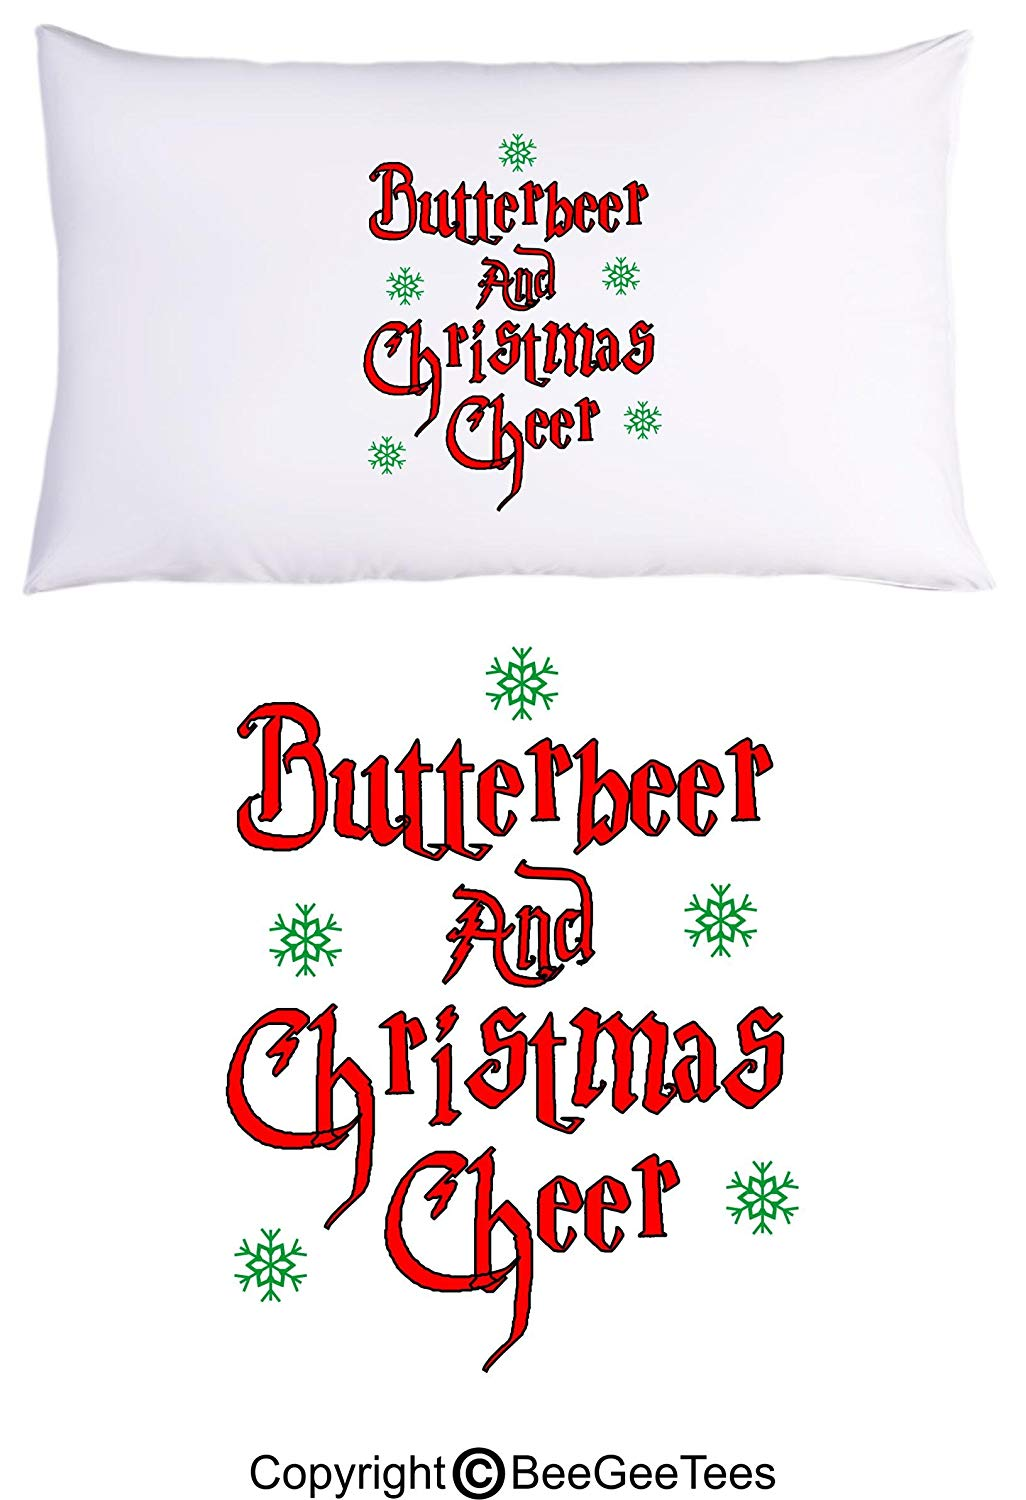 Butterbeer Christmas Cheer Funny Harry Potter Inspired Hogwarts Wizard Pillowcase by BeeGeeTees (1 Queen Pillowcase)